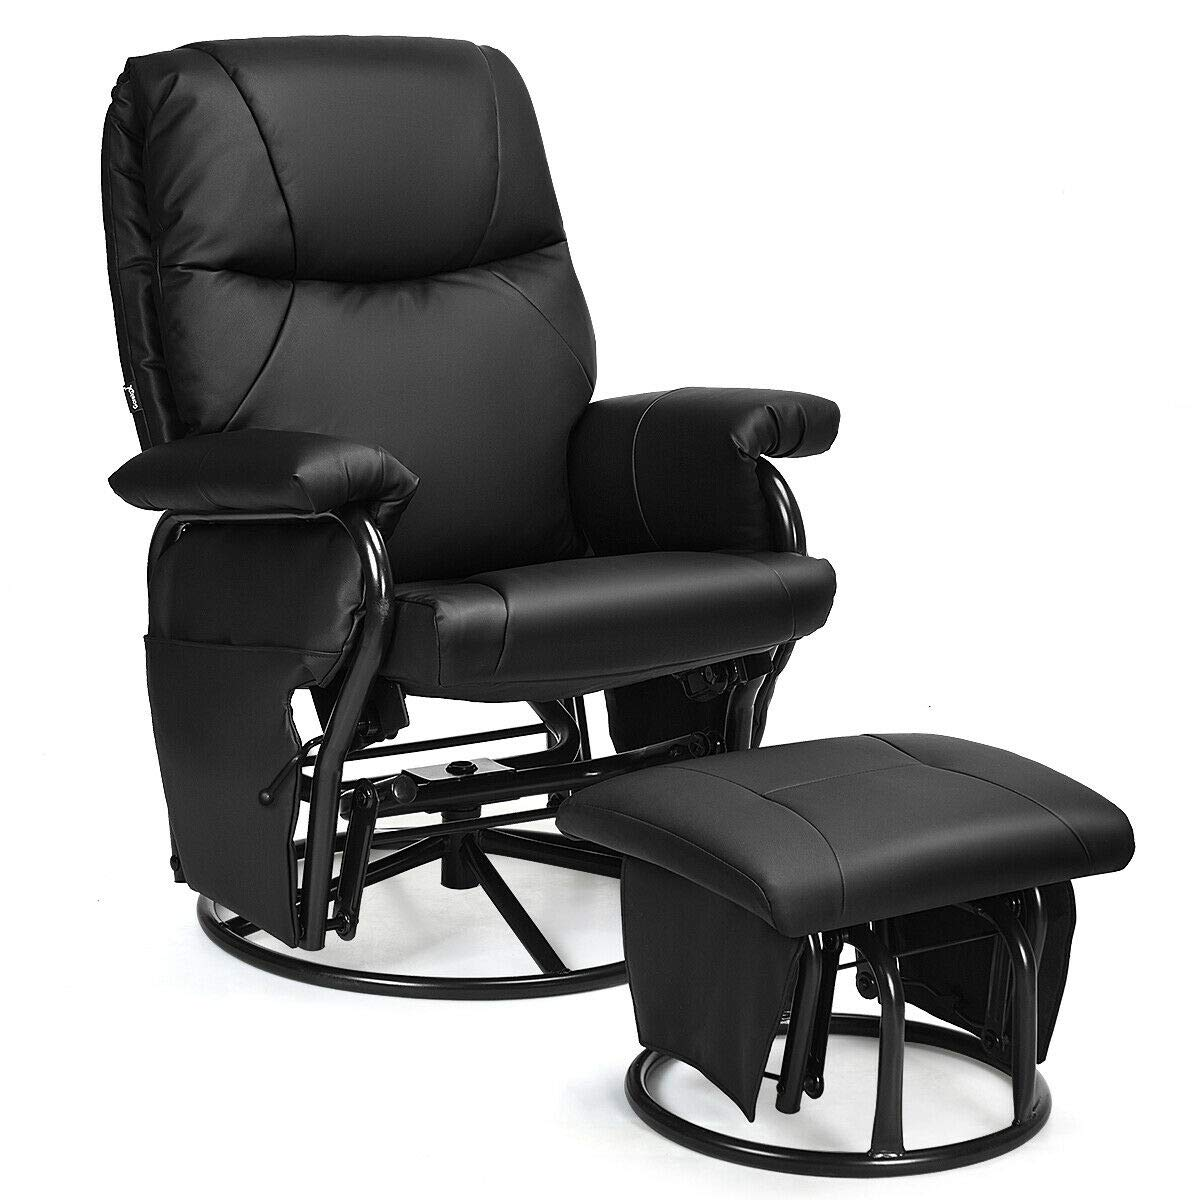 Giantex Glider Recliner with Ottoman, Swivel Glide Rocking Chair with Footrest Stool, PU Leather Lounge Armchair, 360 Degree Swivel Overstuffed Padded Seat Chair (Black) by Giantex